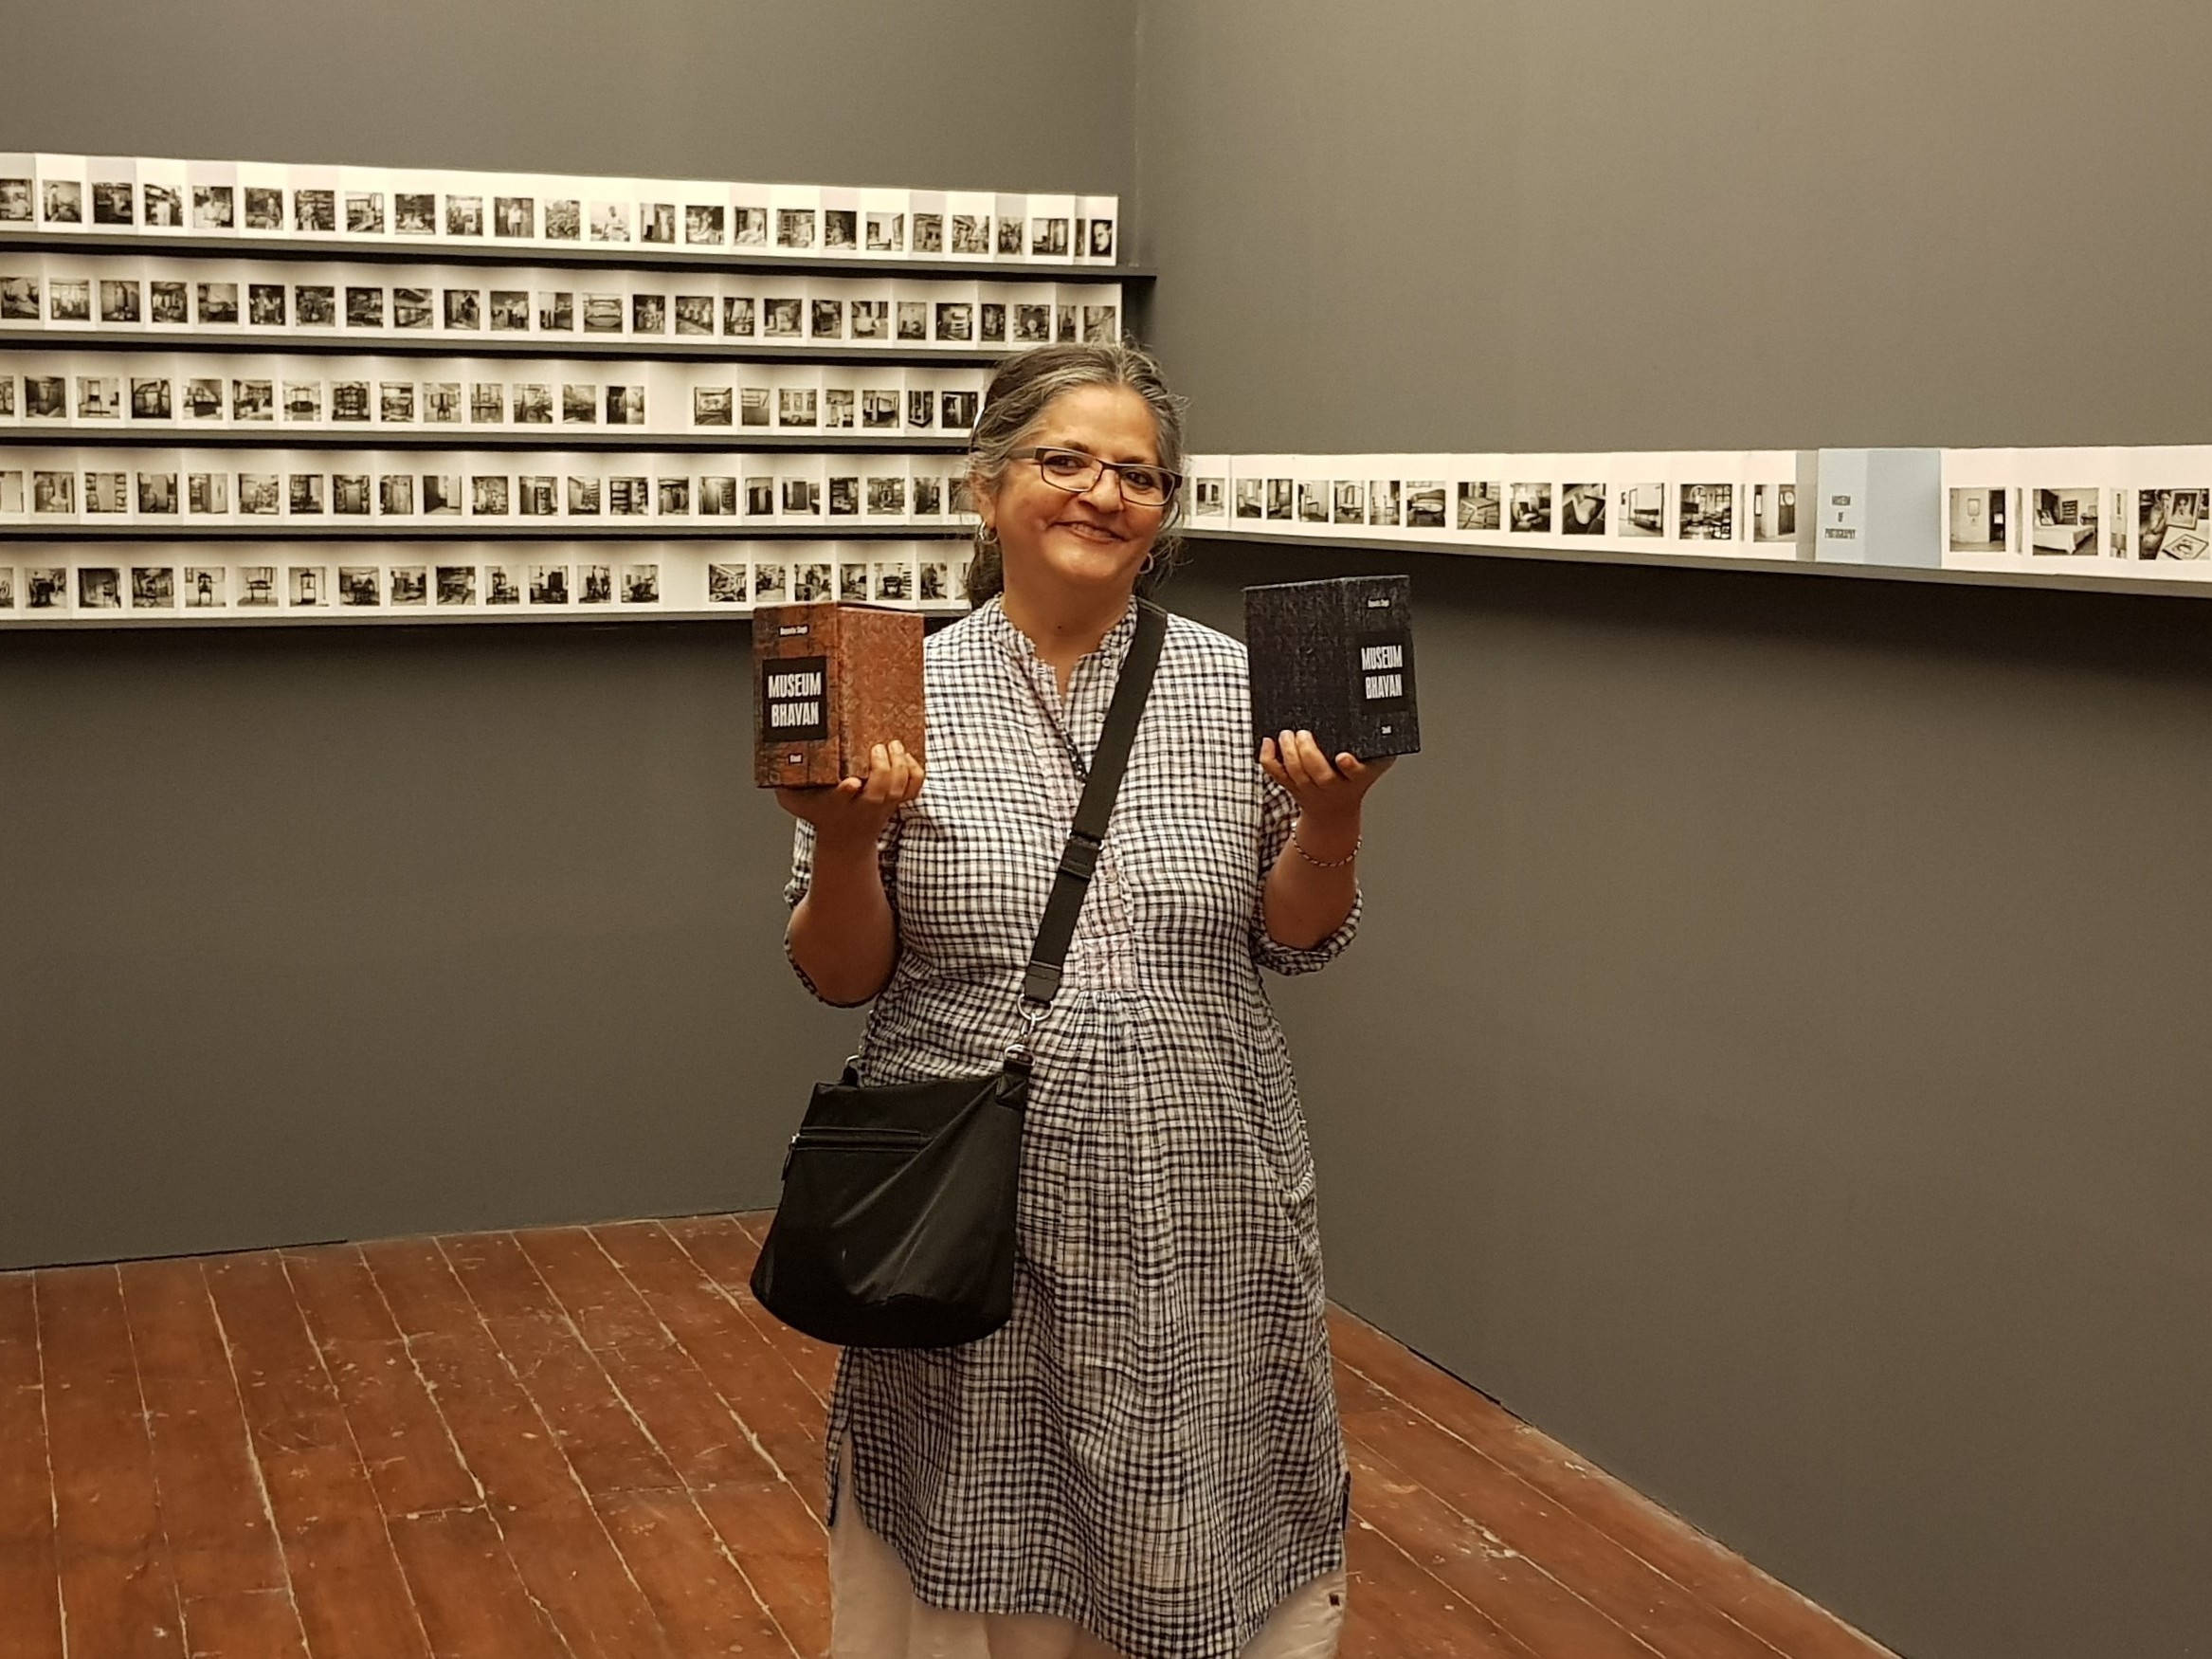 Singh presents her Museum Bhavan books at the 2017 Serendipity Arts Festival in Goa, India.